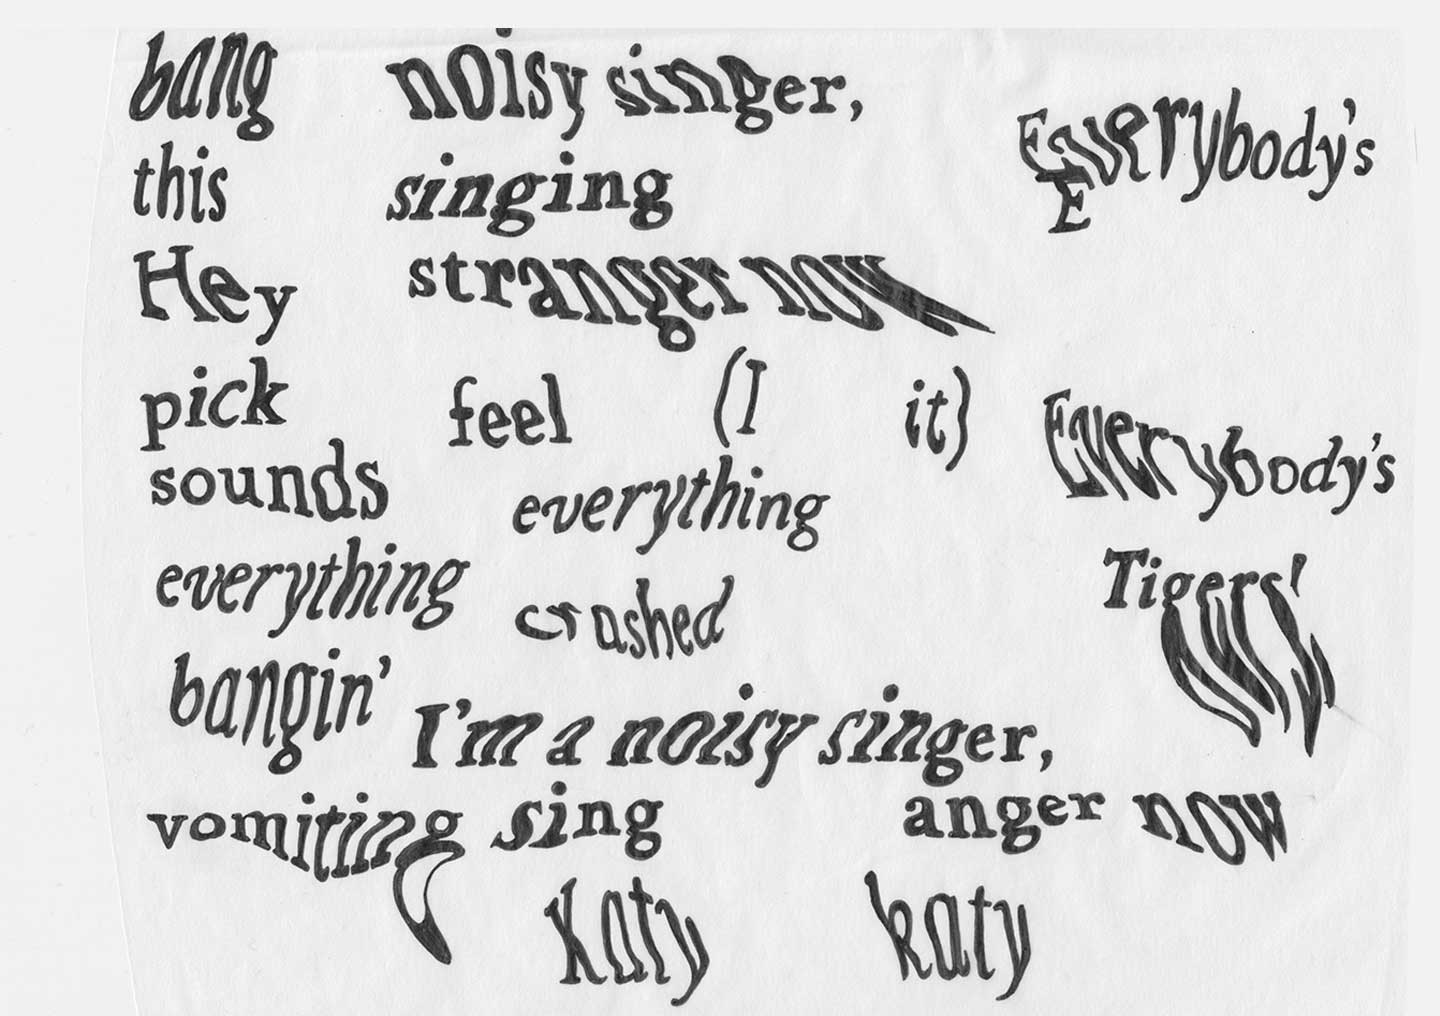 Scan of several warped words, hand drawn